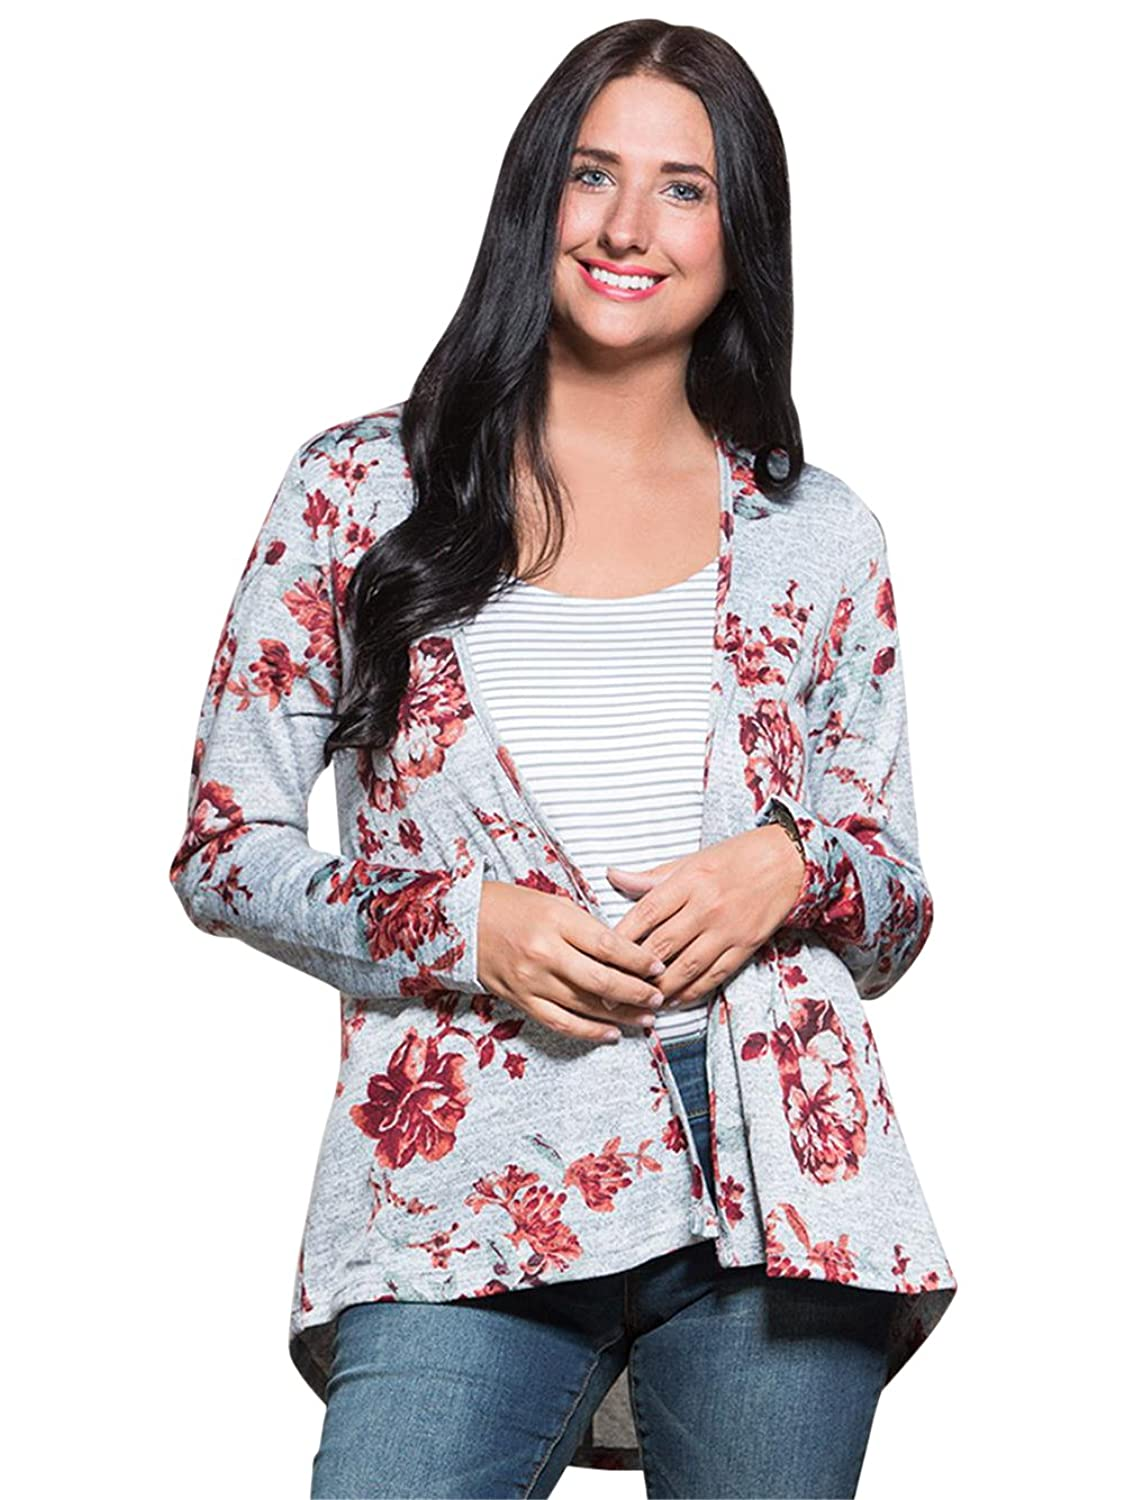 VANITY Women's Floral Lace Inset Cardigan XL Berry